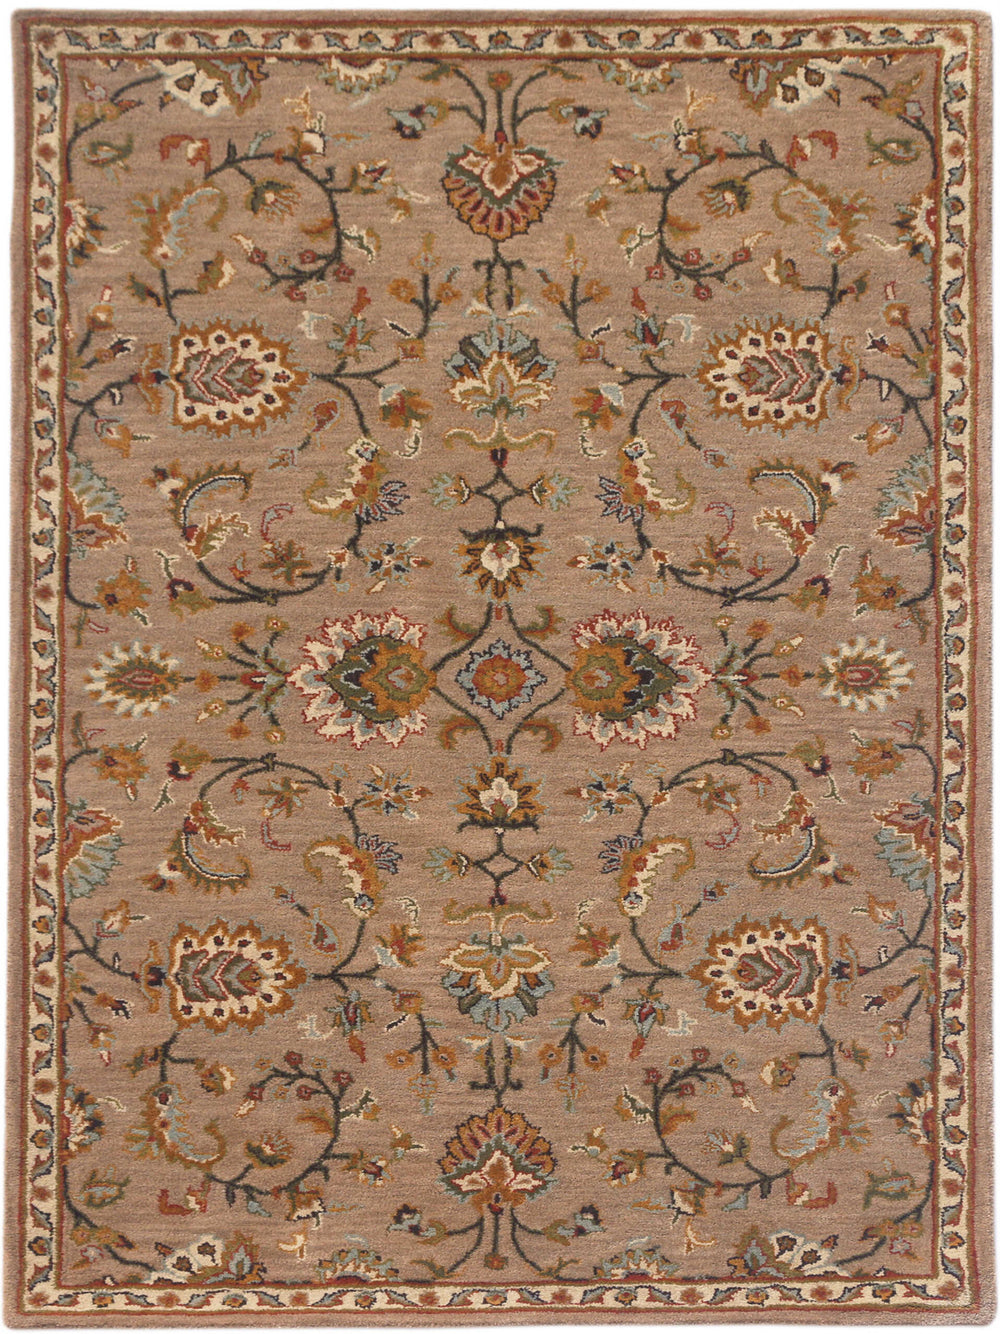 Amer Rugs Liberty LIB-5 Area Rug